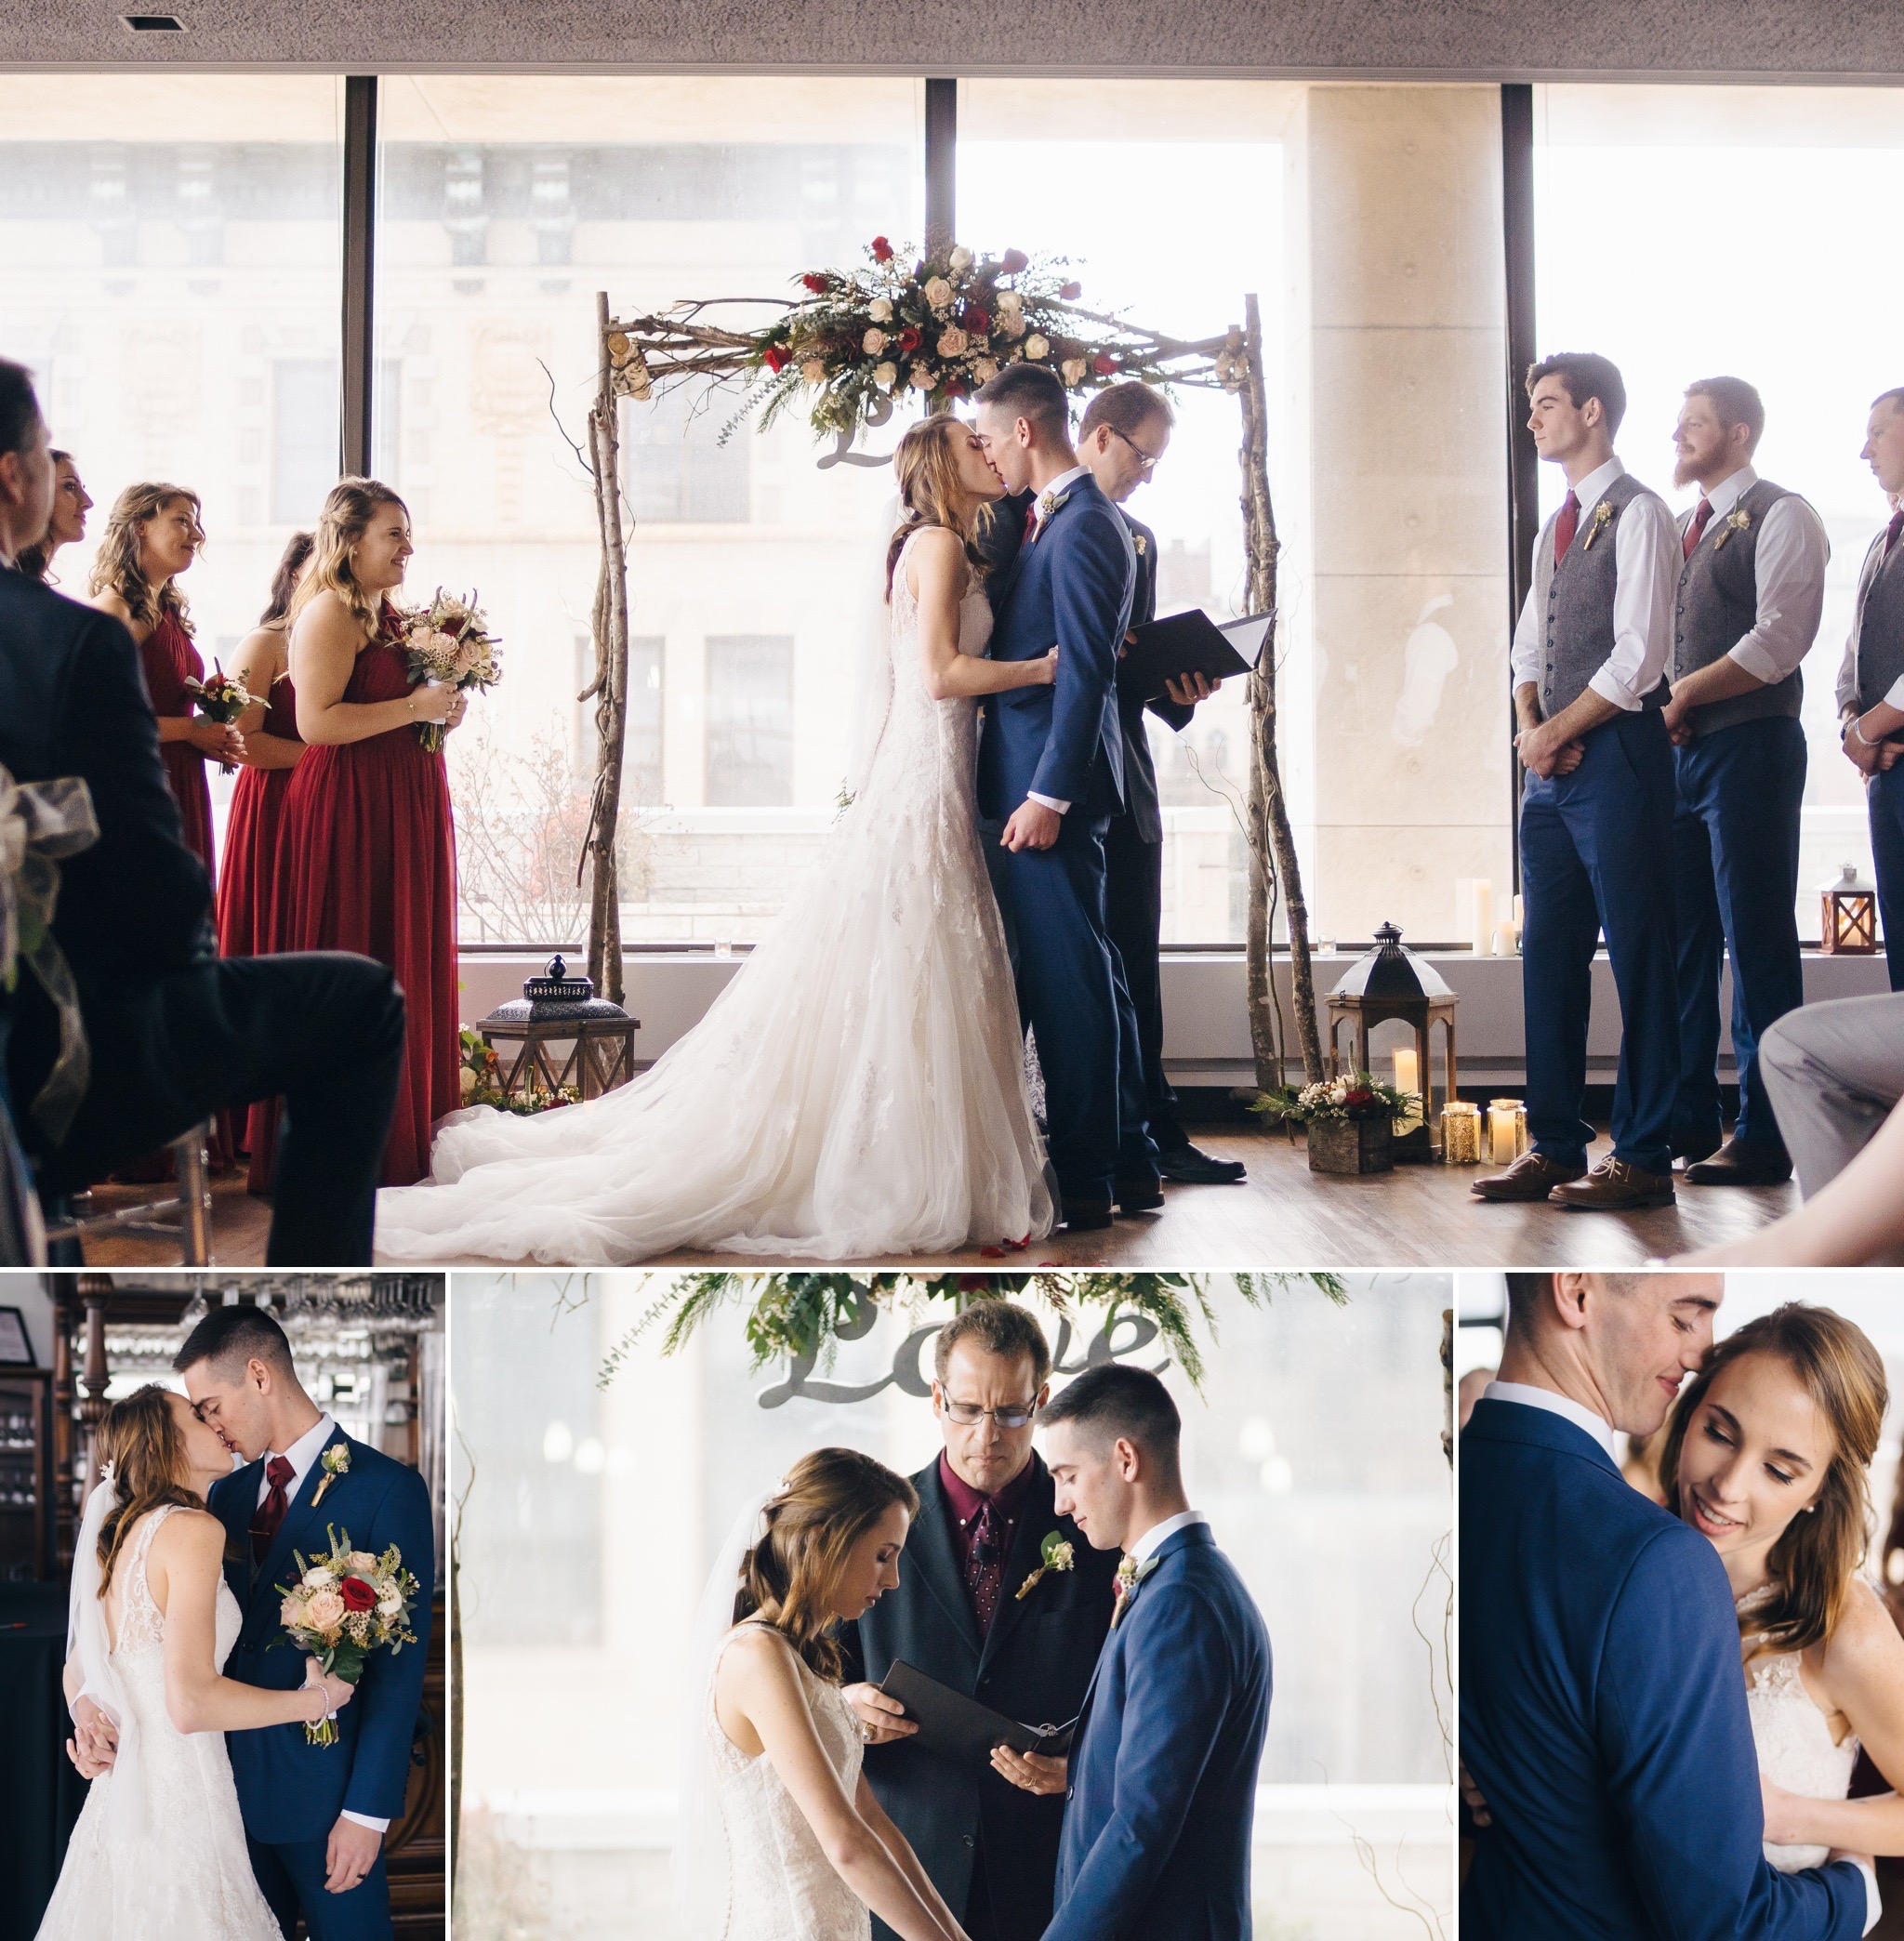 Copy of rustic chic wedding at city view terrace view by the james and craddock terry hotel downtown lynchburg va by jonathan hannah photography